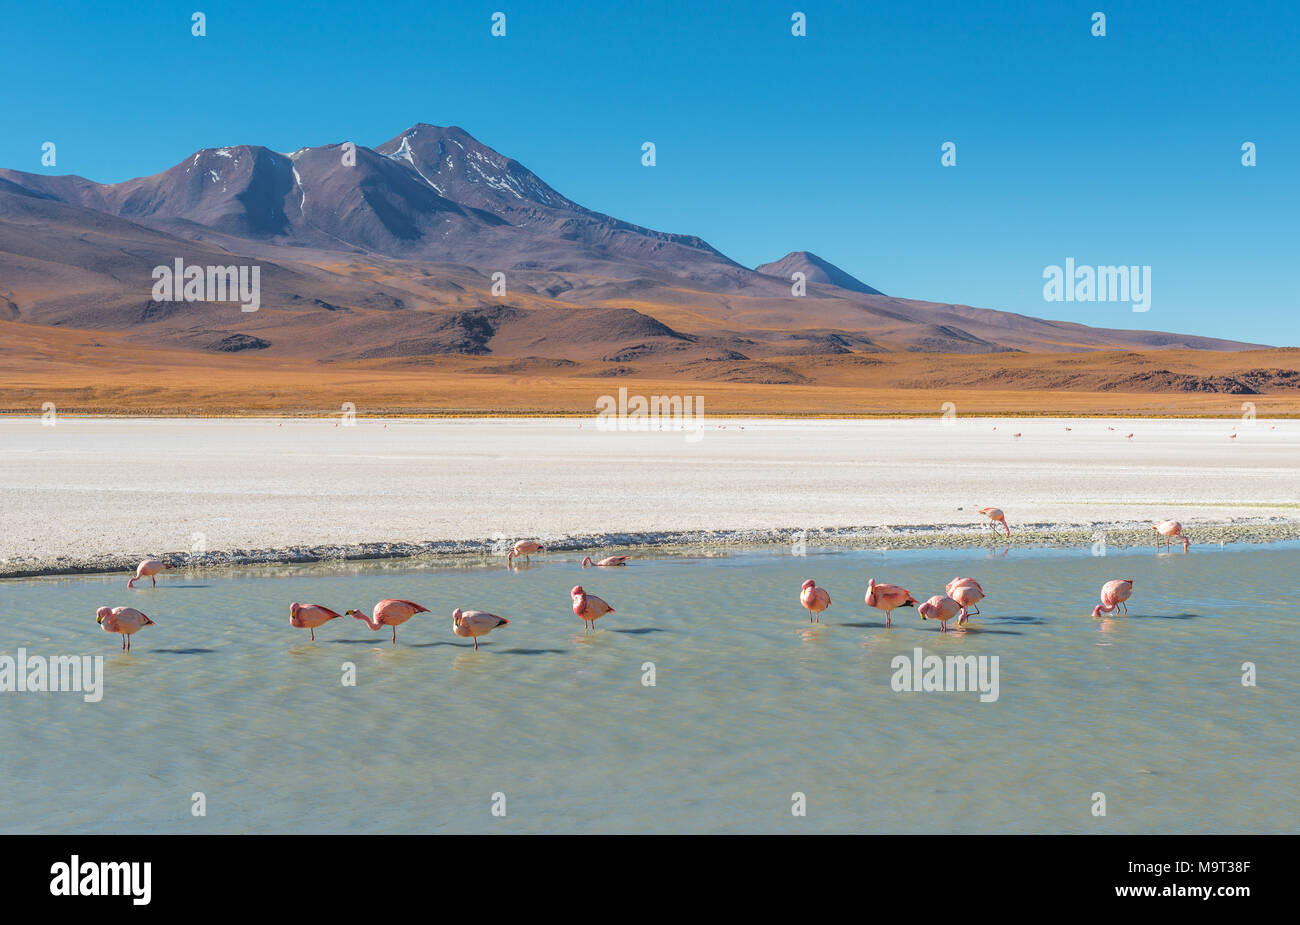 The Canapa Lagoon with many James' and Chilean flamingos feeding on algae and microscopic shrimps with their beak that functions as a filter, Bolivia. - Stock Image